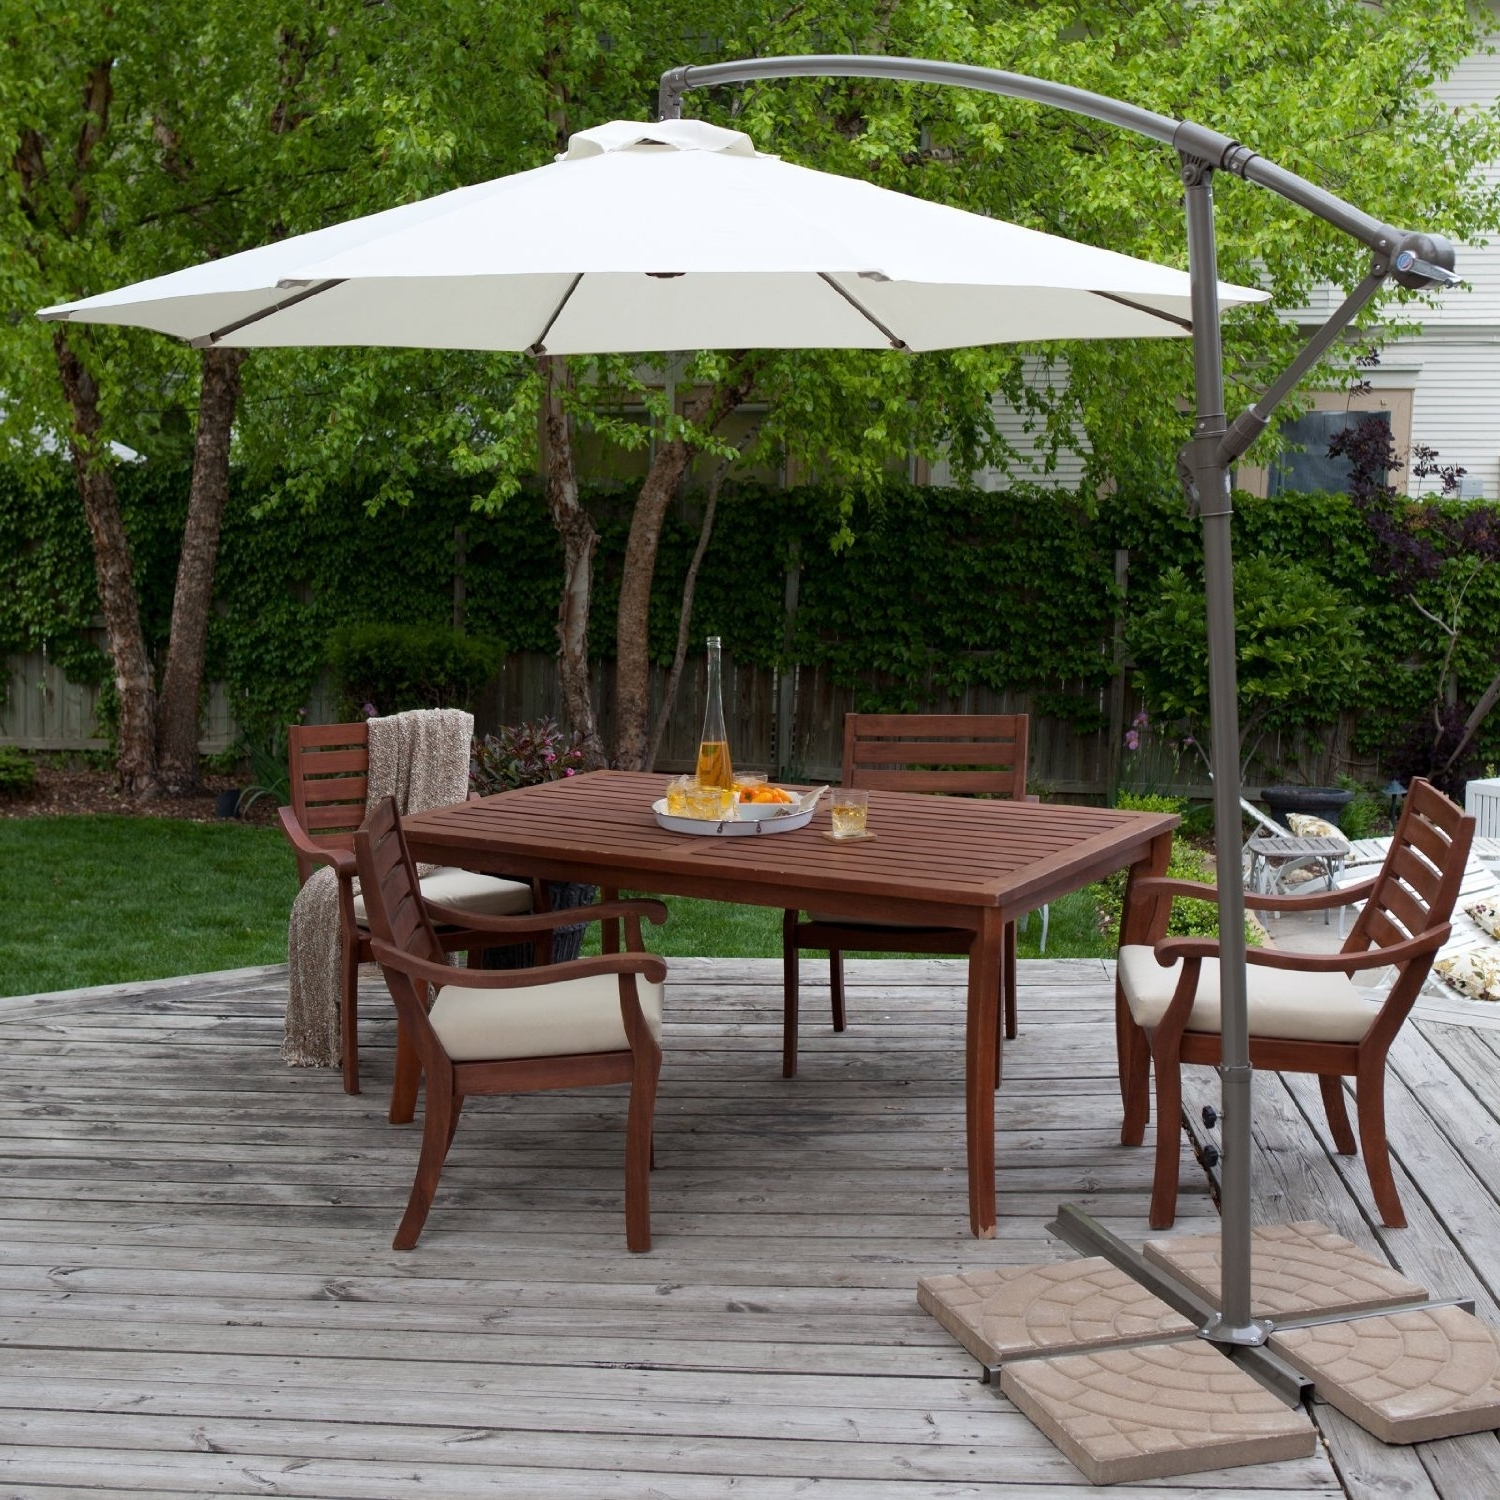 Round White Fabric Patio Umbrella With Black Base Over Dark Brown Intended For Recent Patio Umbrellas With Table (View 11 of 20)